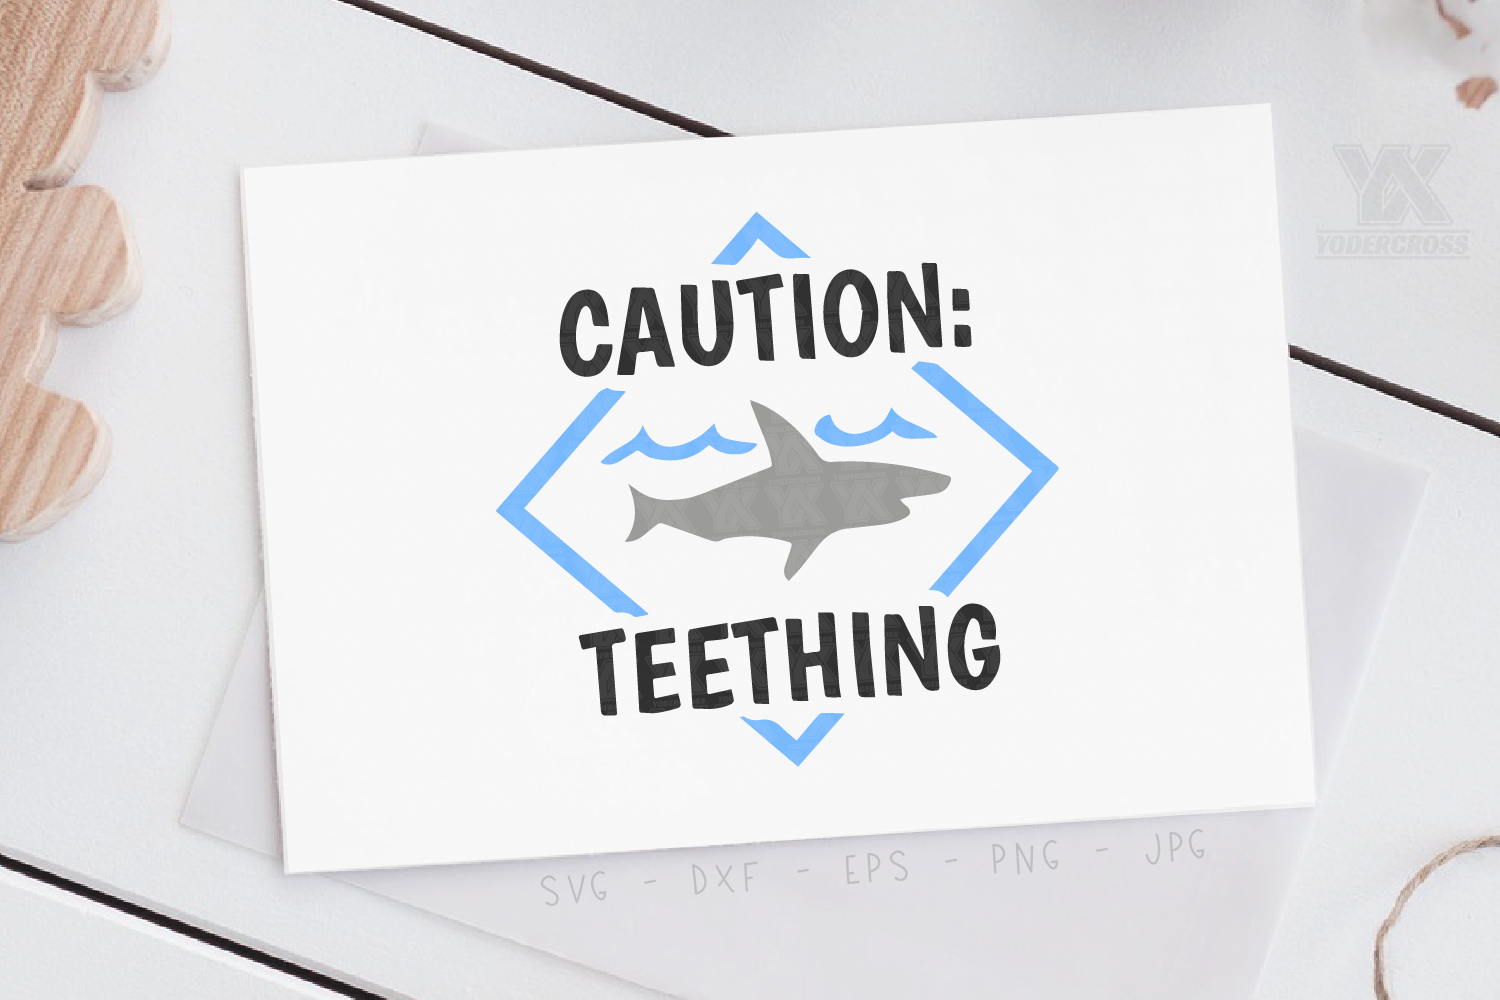 Caution Teething Shark SVG example image 2